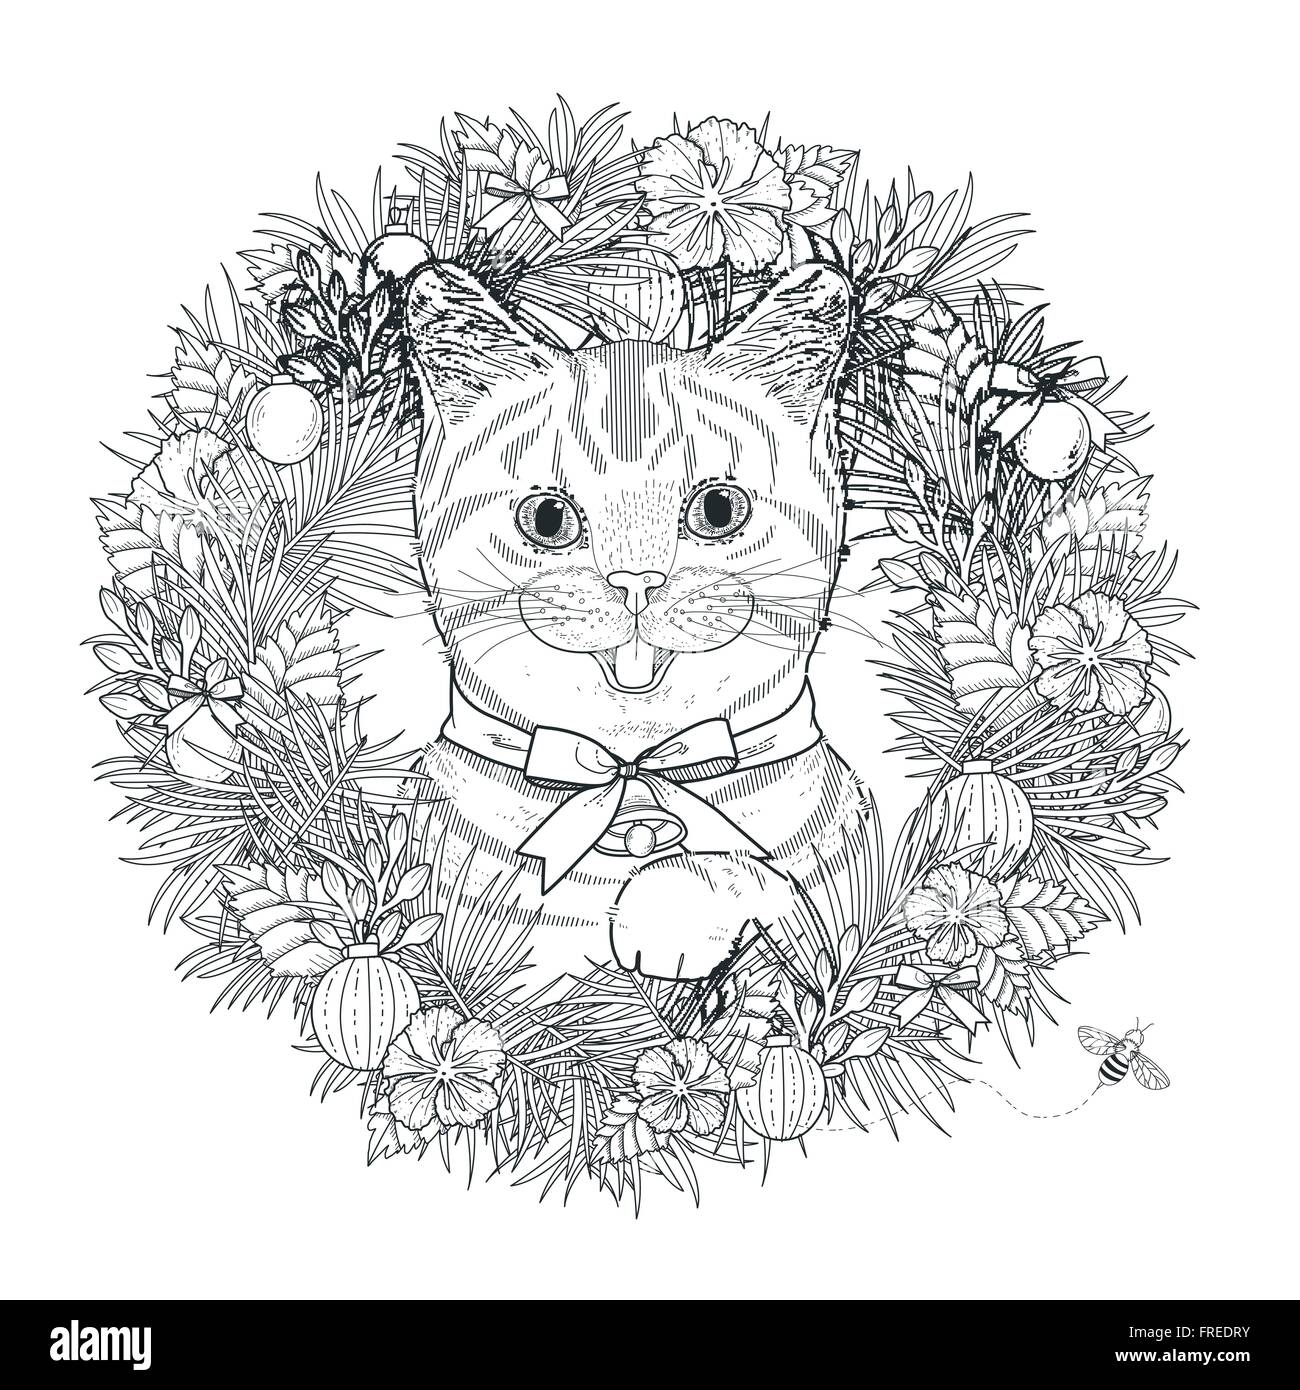 Adorable Kitty Coloring Page In Exquisite Style Stock Vector Art